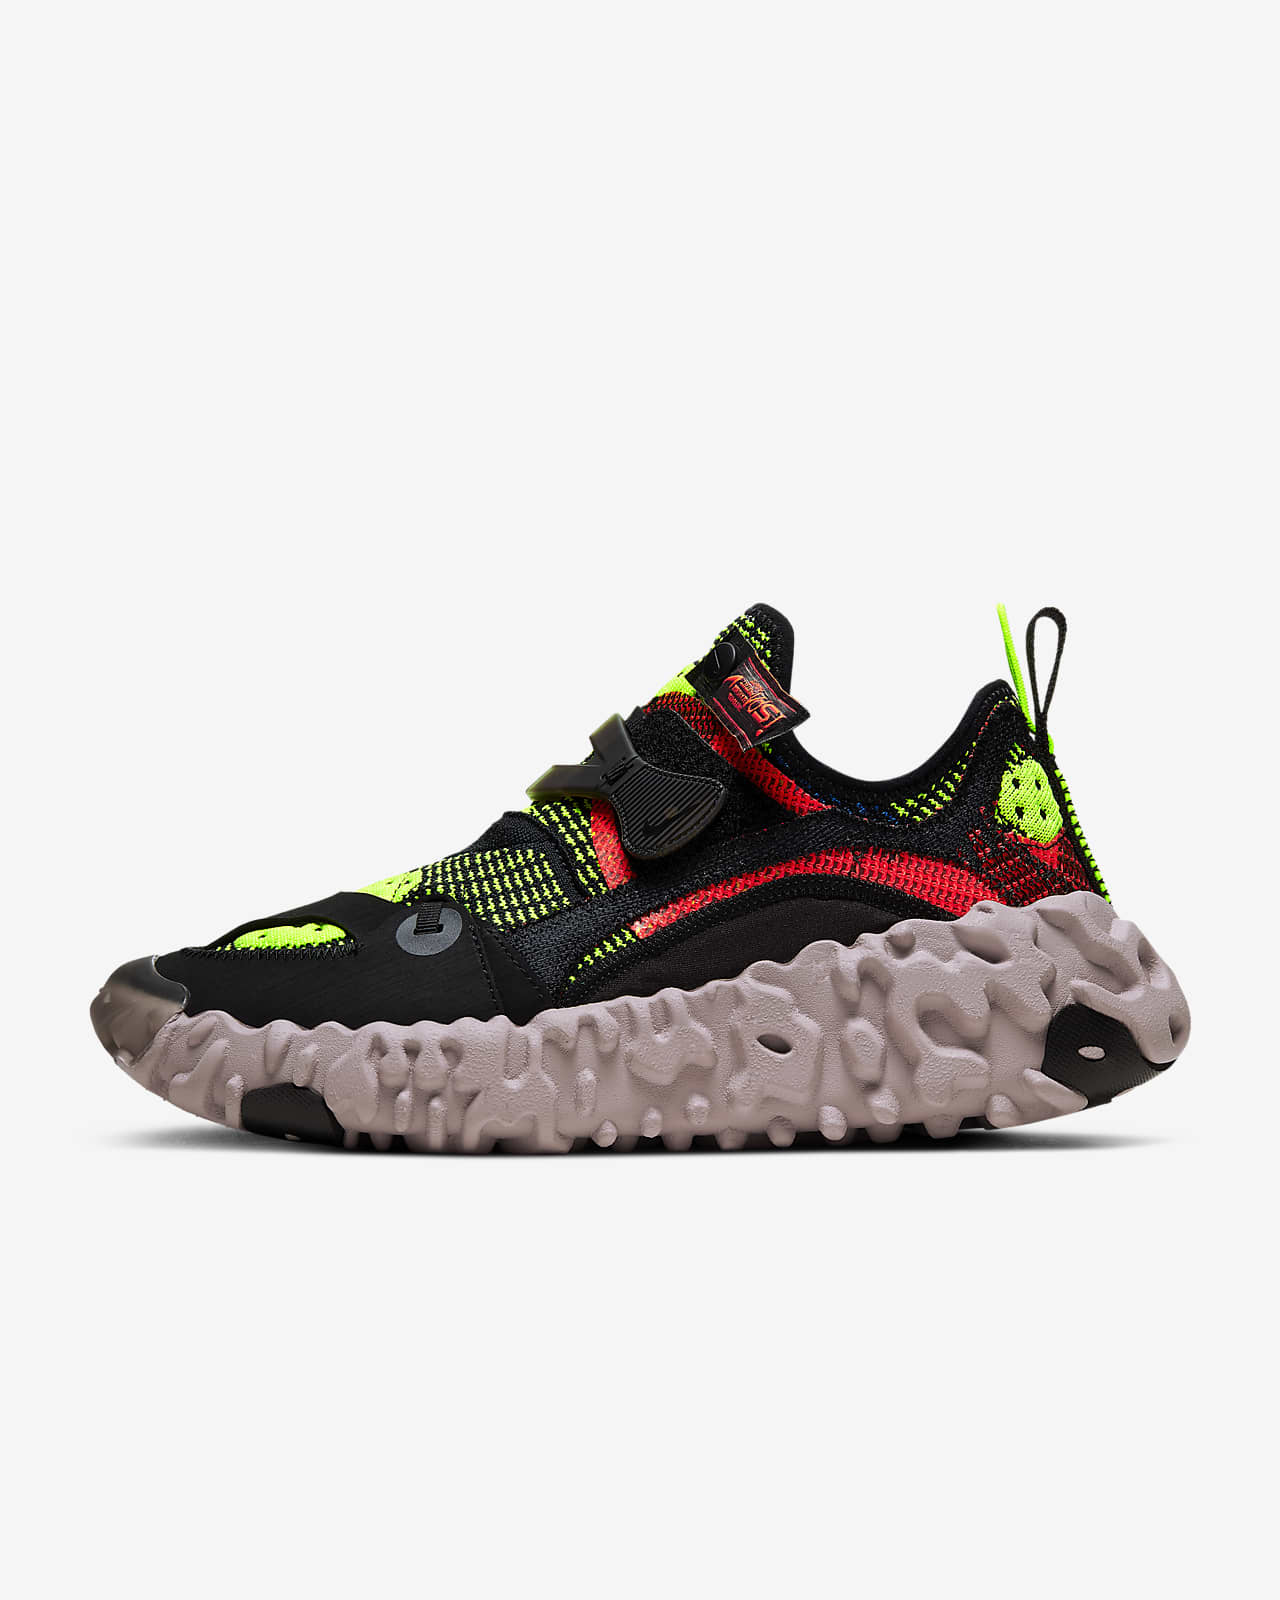 Nike ISPA OverReact Flyknit Men's Shoe